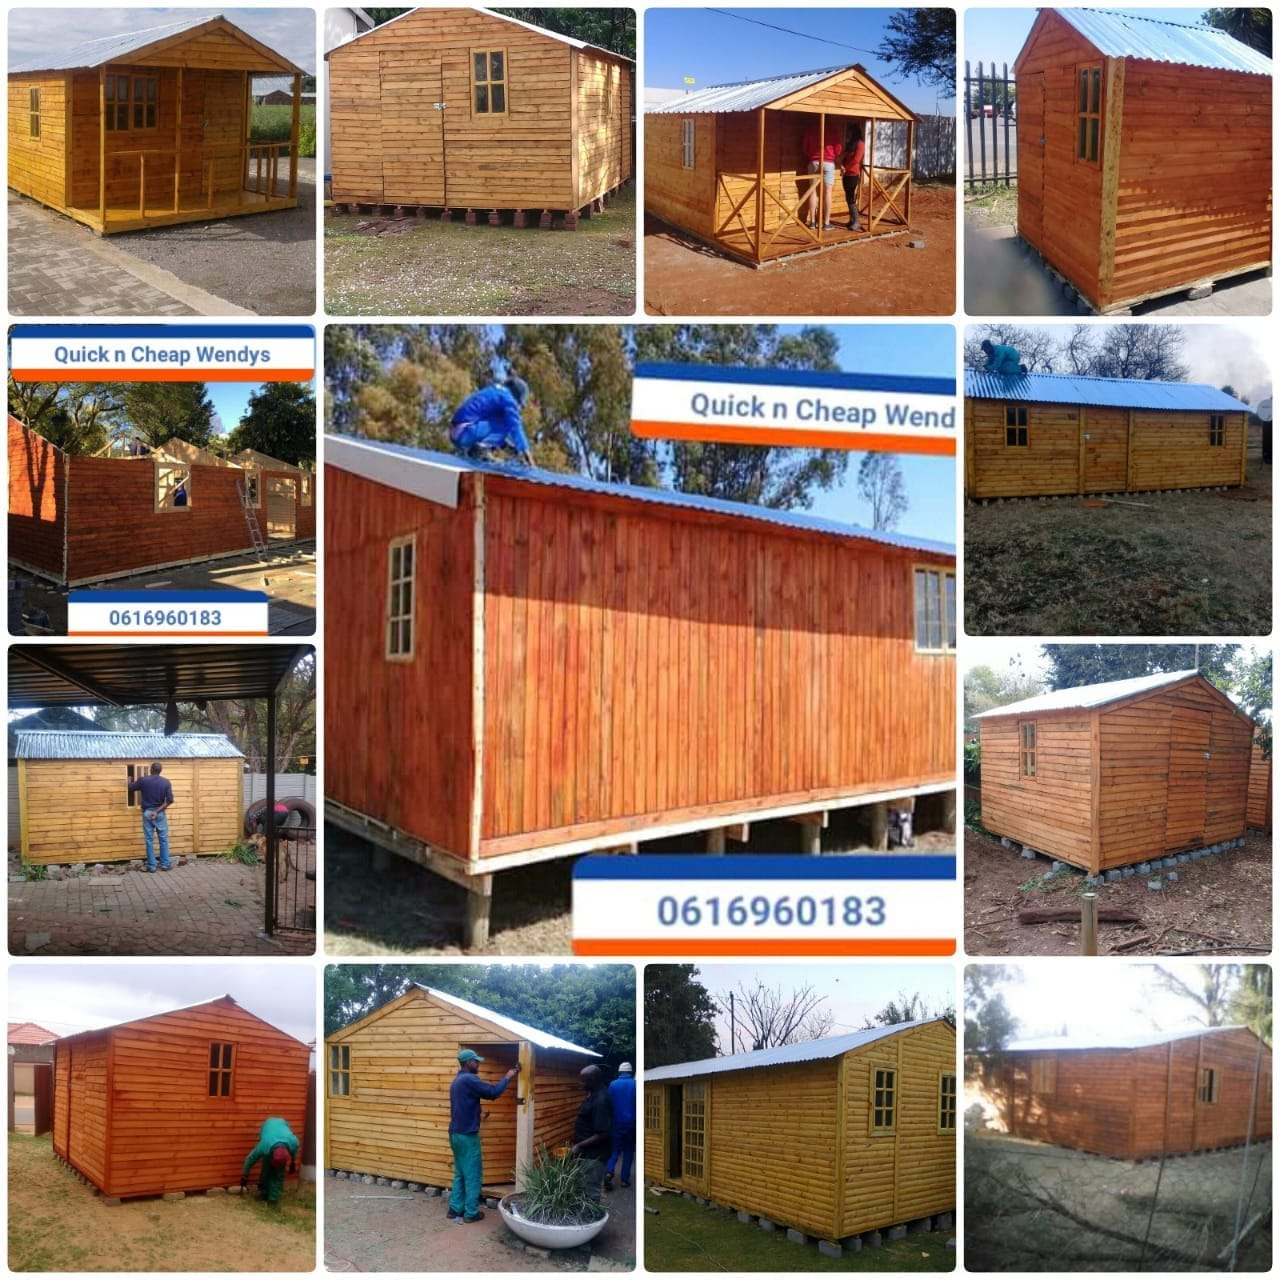 Affordable Wendy Houses